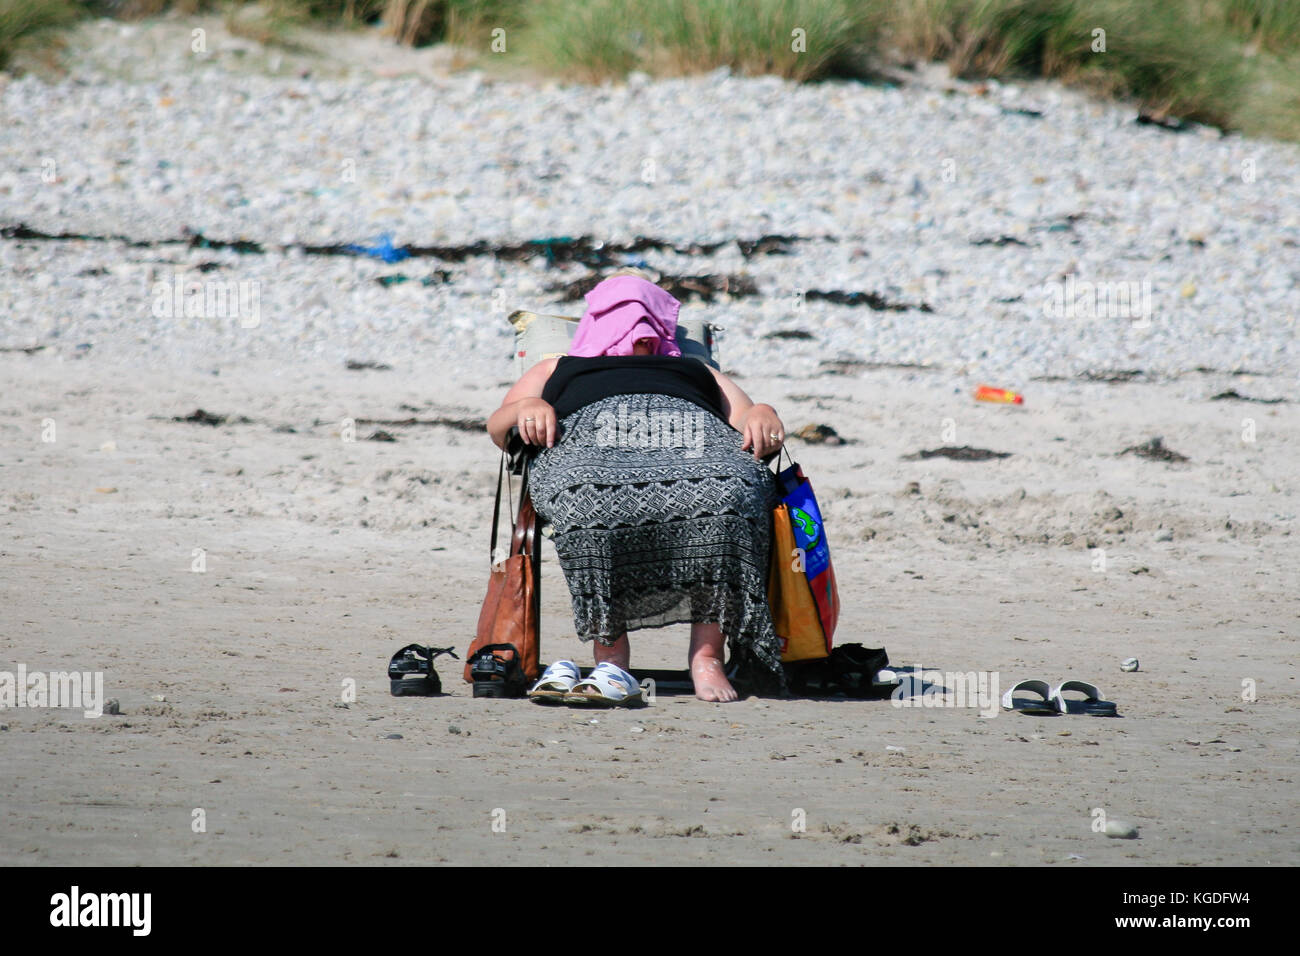 Lady laying on a chair covers her face to protect from the strong midday sun on a Keel beach in Keel, Achill Island, Stock Photo